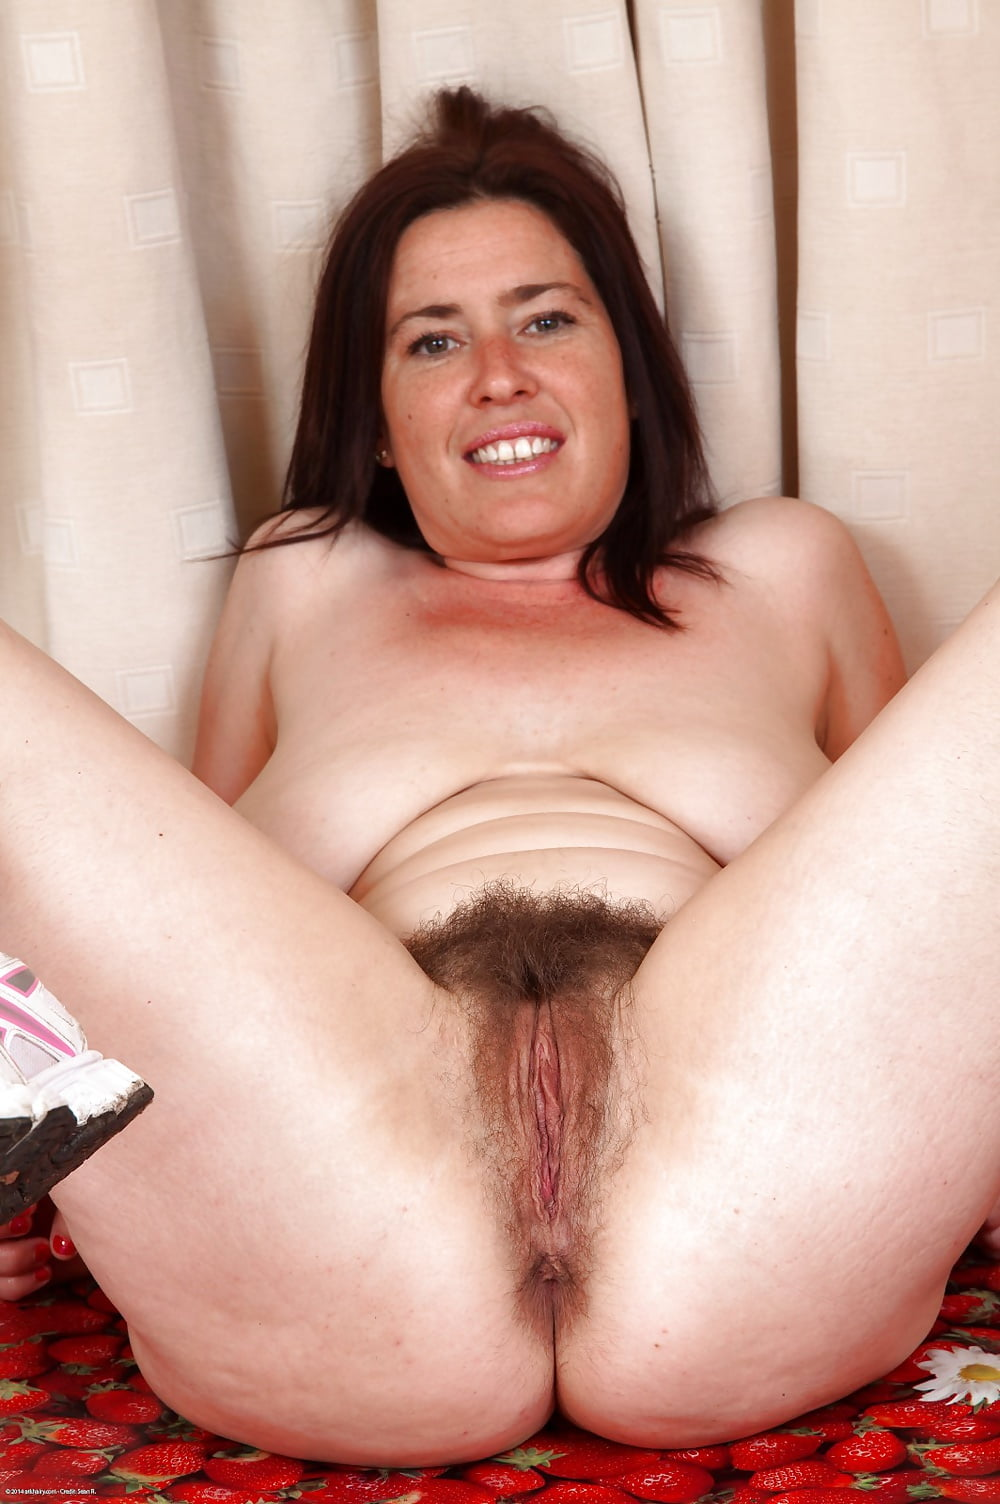 Daddy uk mature shaved or hairy pussy